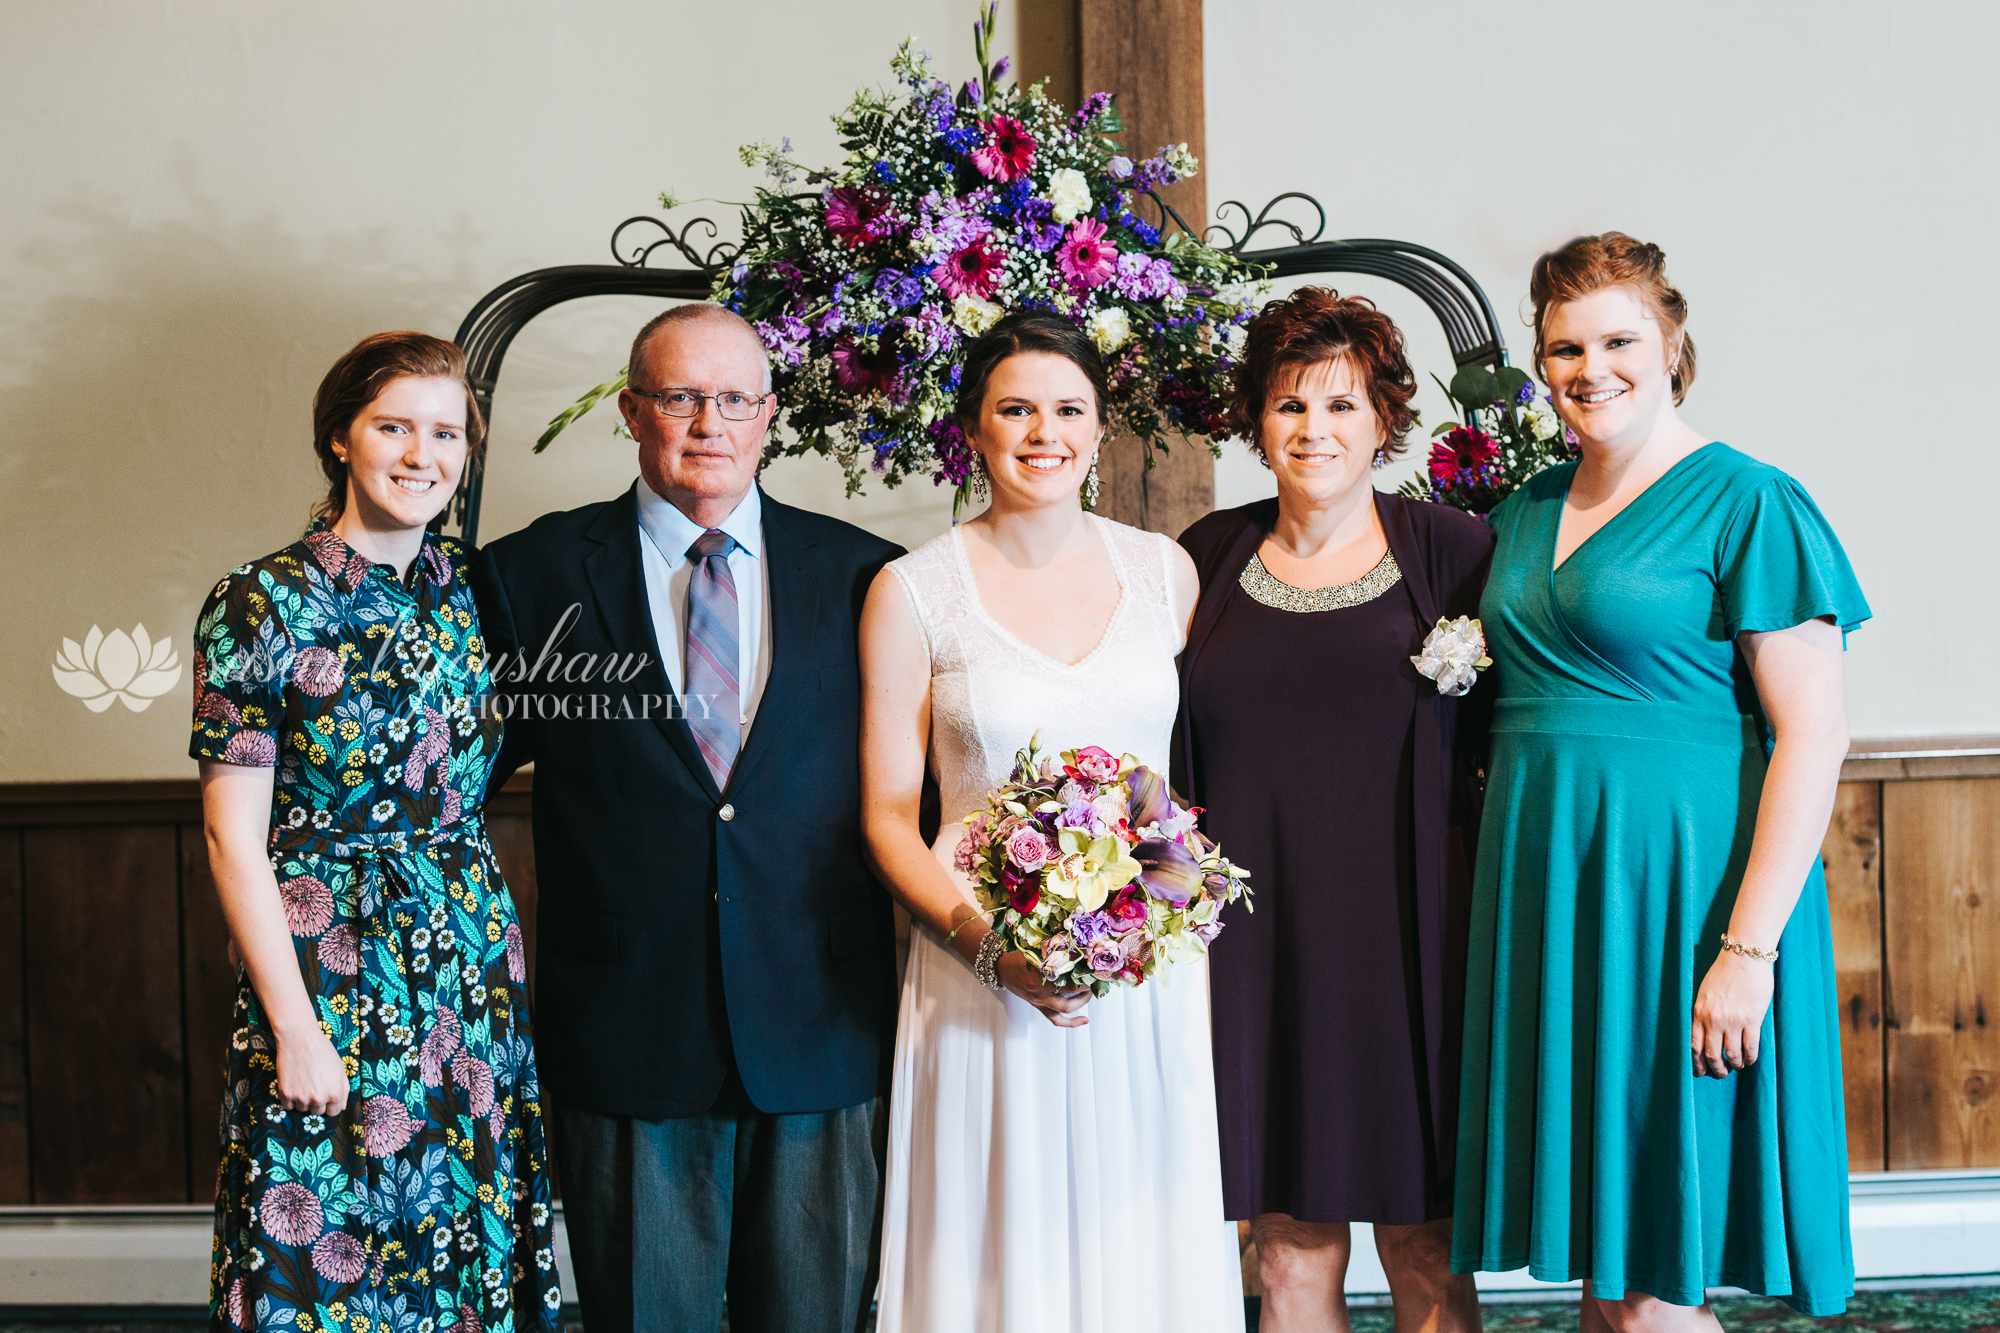 Adena and  Erik Wedding 05-17-2019 SLY Photography-61.jpg